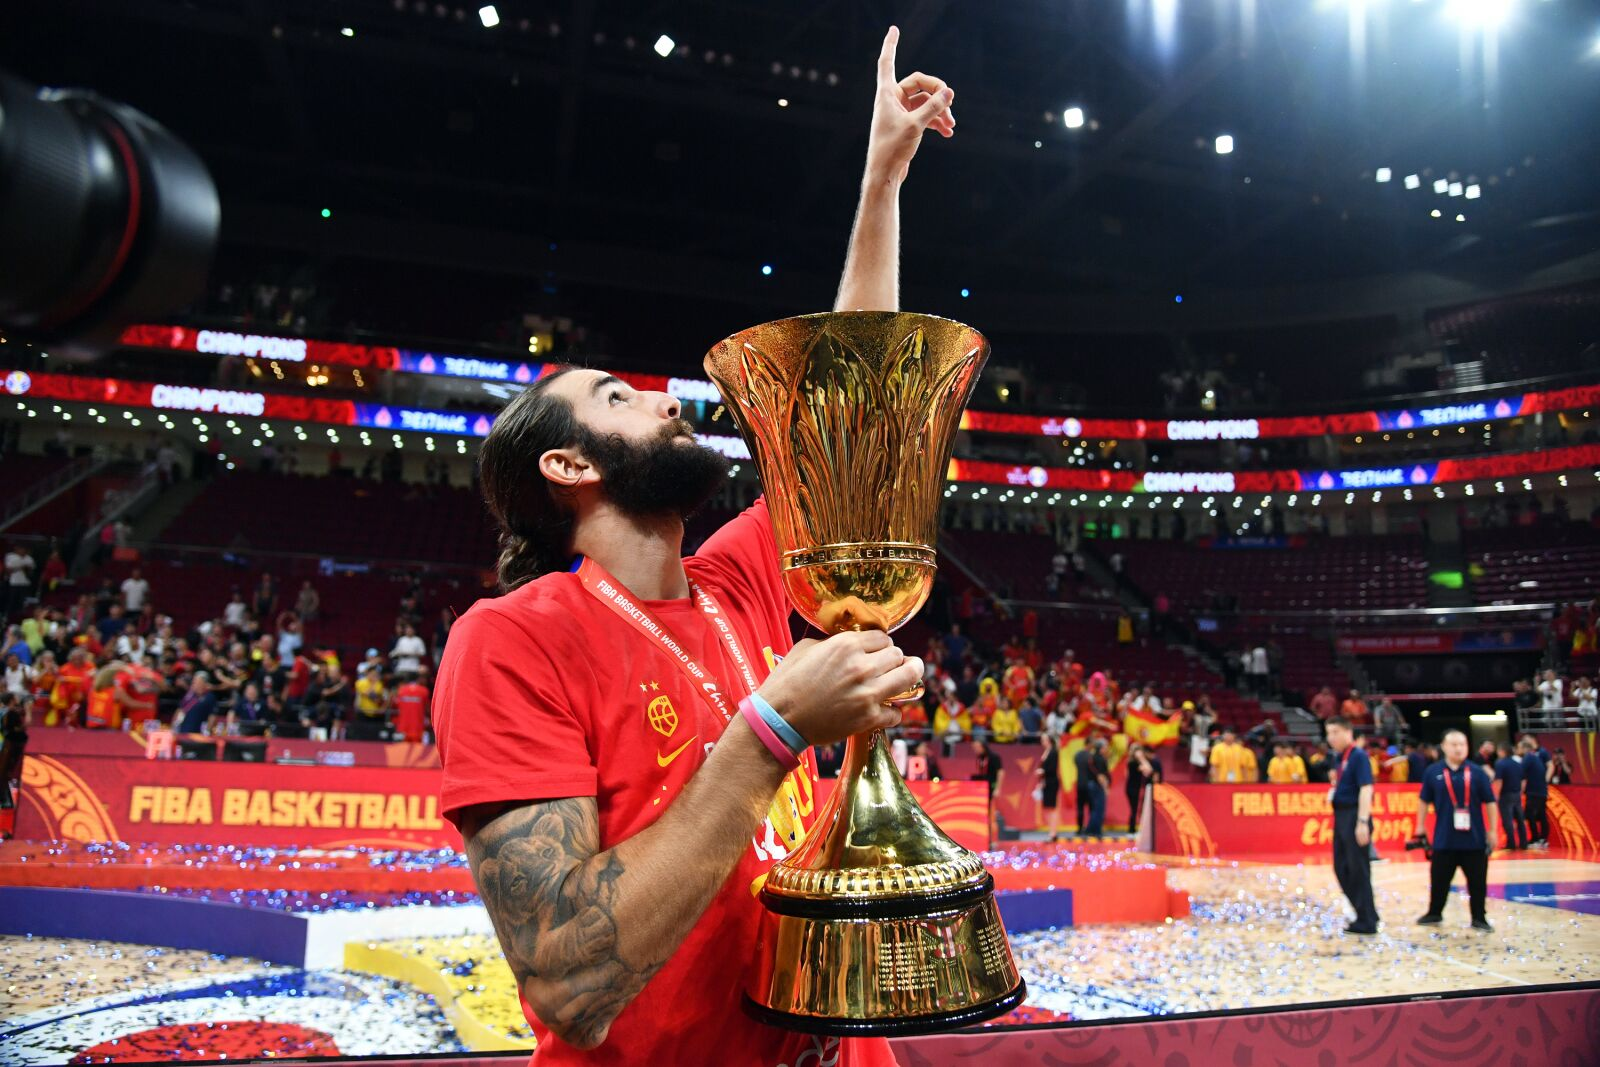 Phoenix Suns newcomer, Ricky Rubio, lives every day for his mom